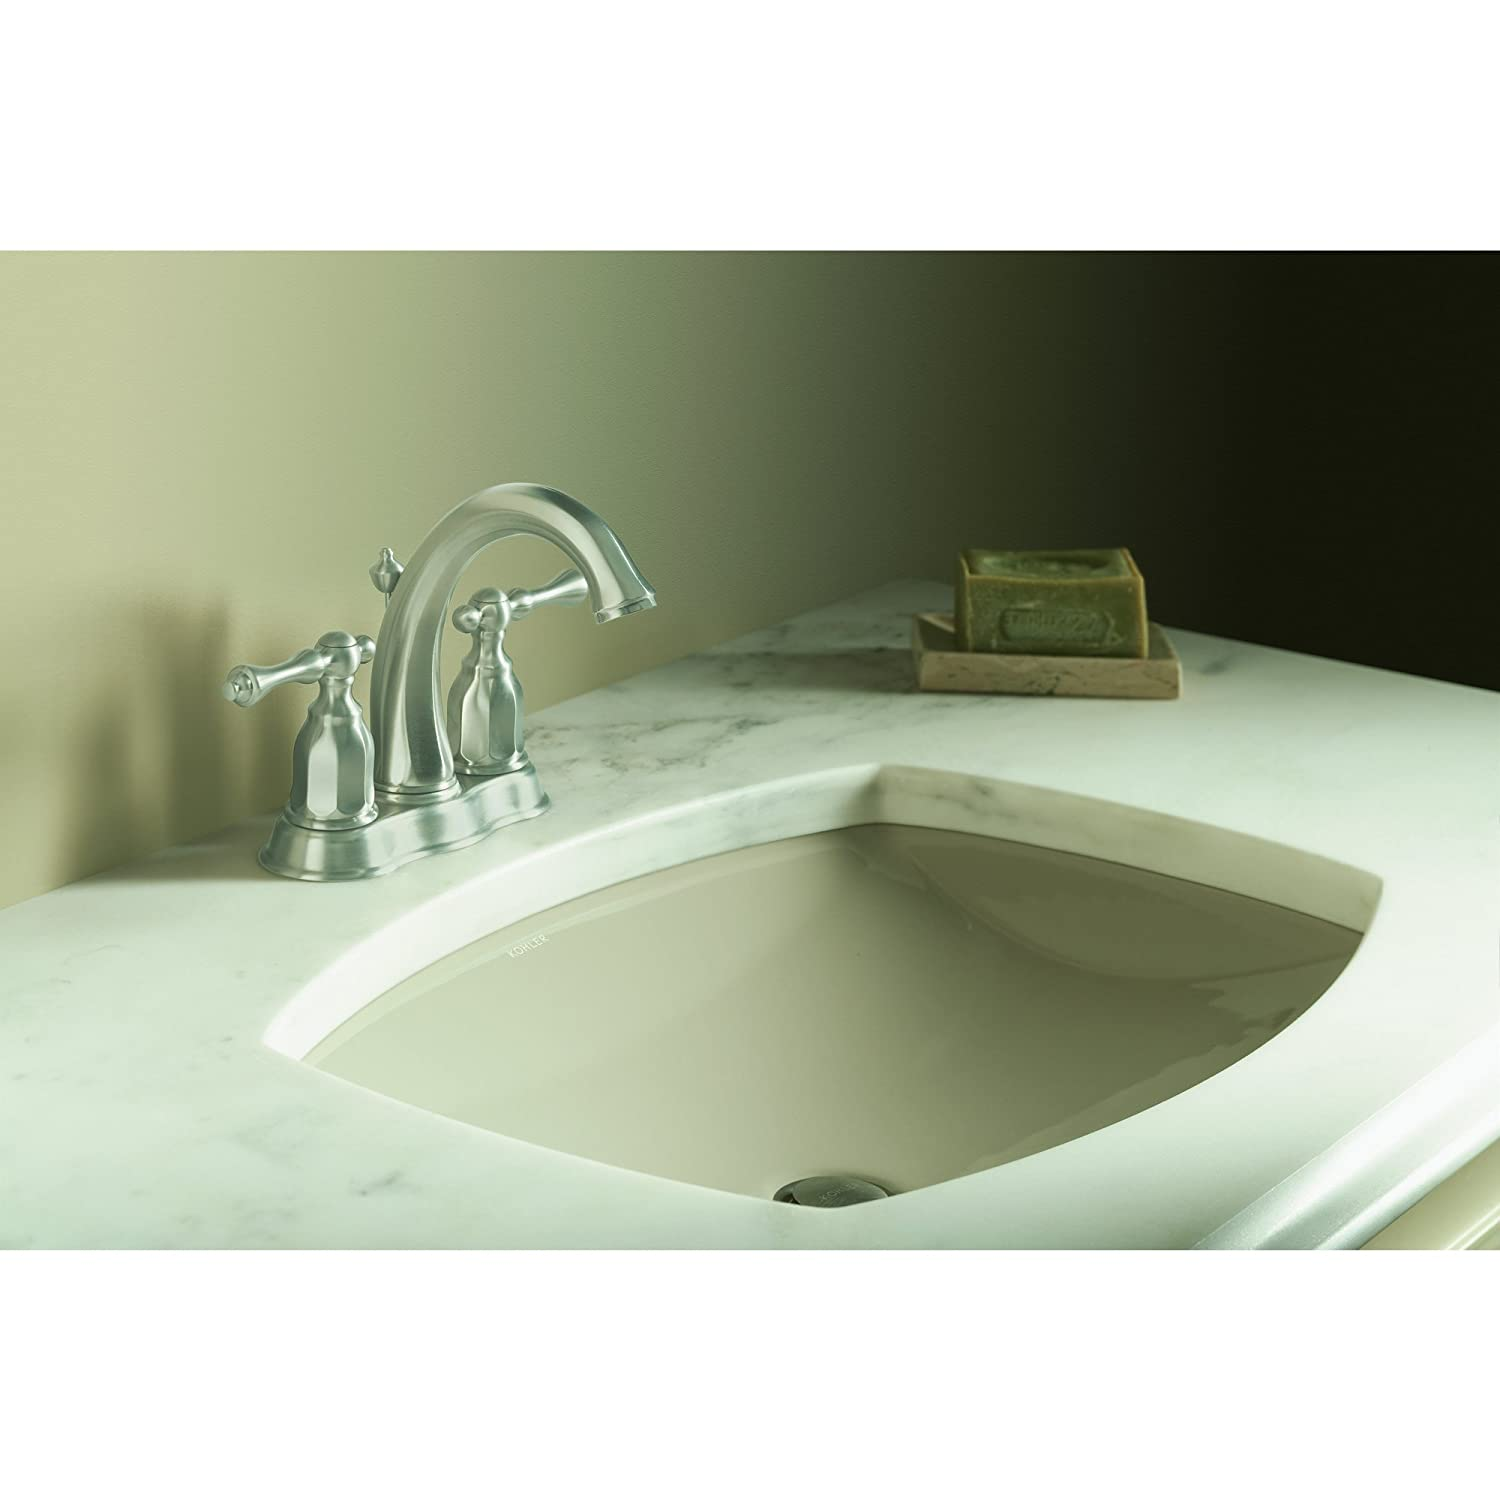 KOHLER K-13490-4-BN Kelston Center Set Bathroom Sink Faucet, Vibrant ...